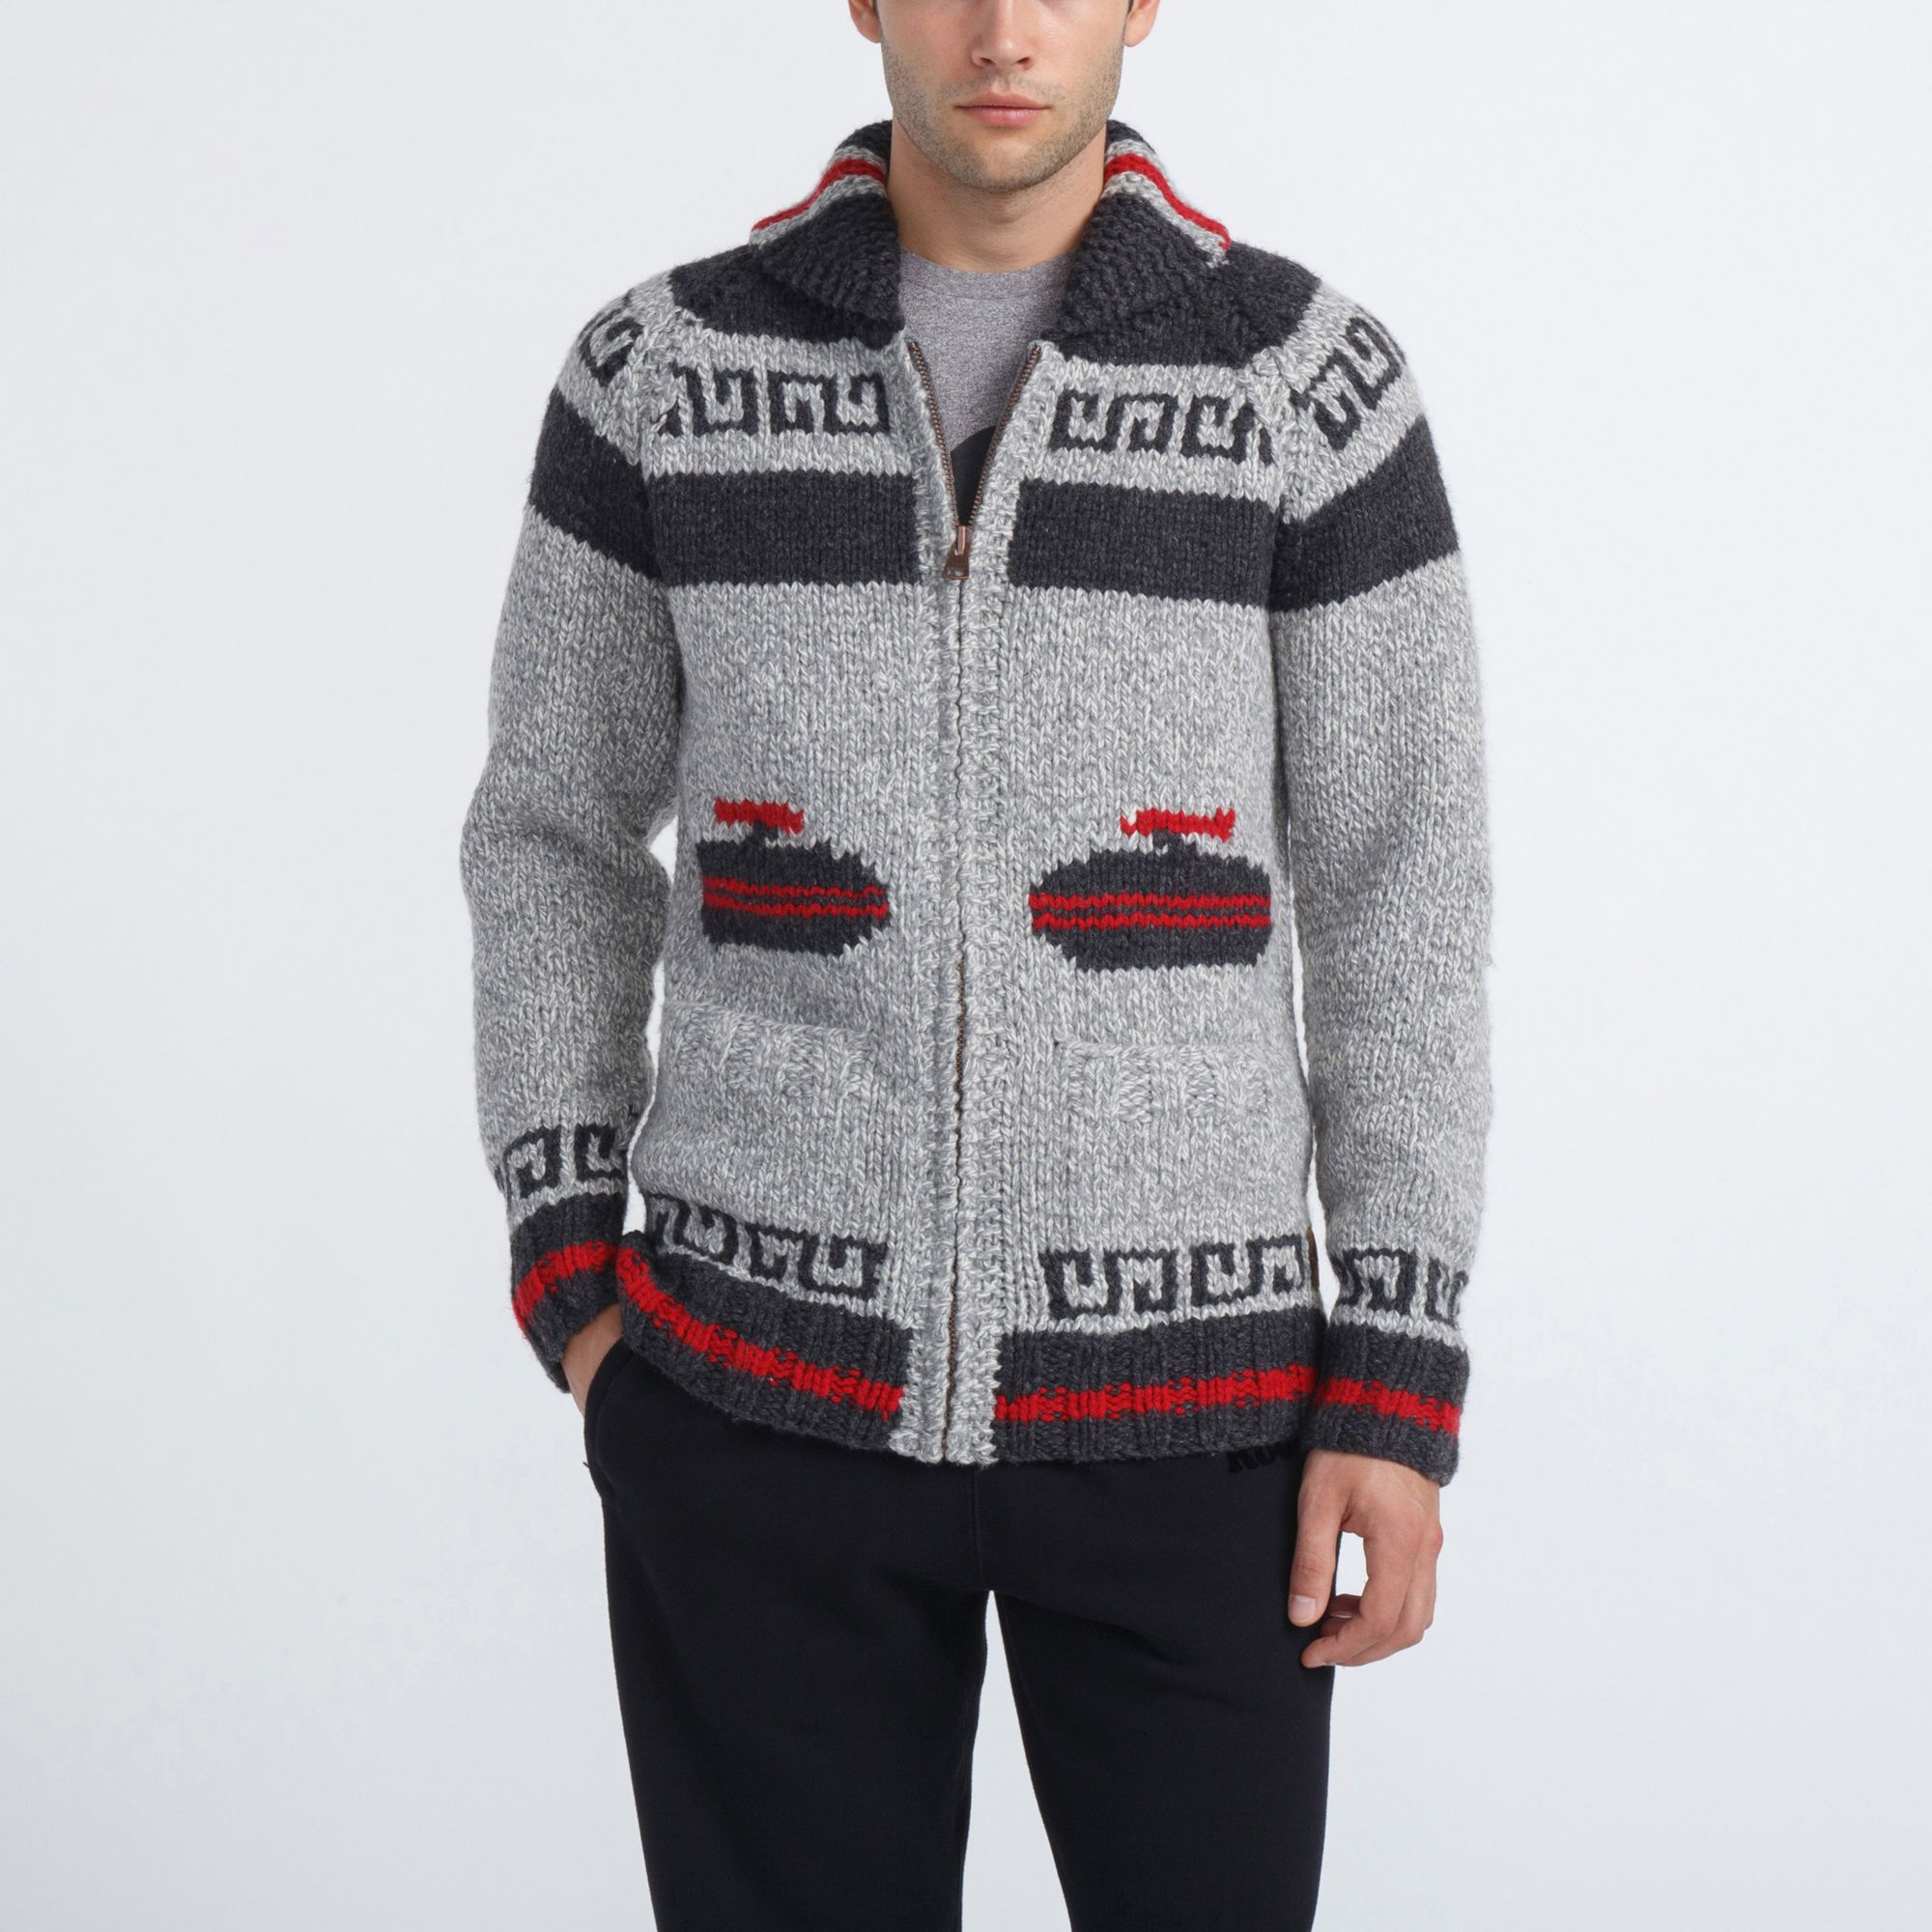 Unisex Mary Maxim Curling Sweater   Roots - Holiday 2015, style ...